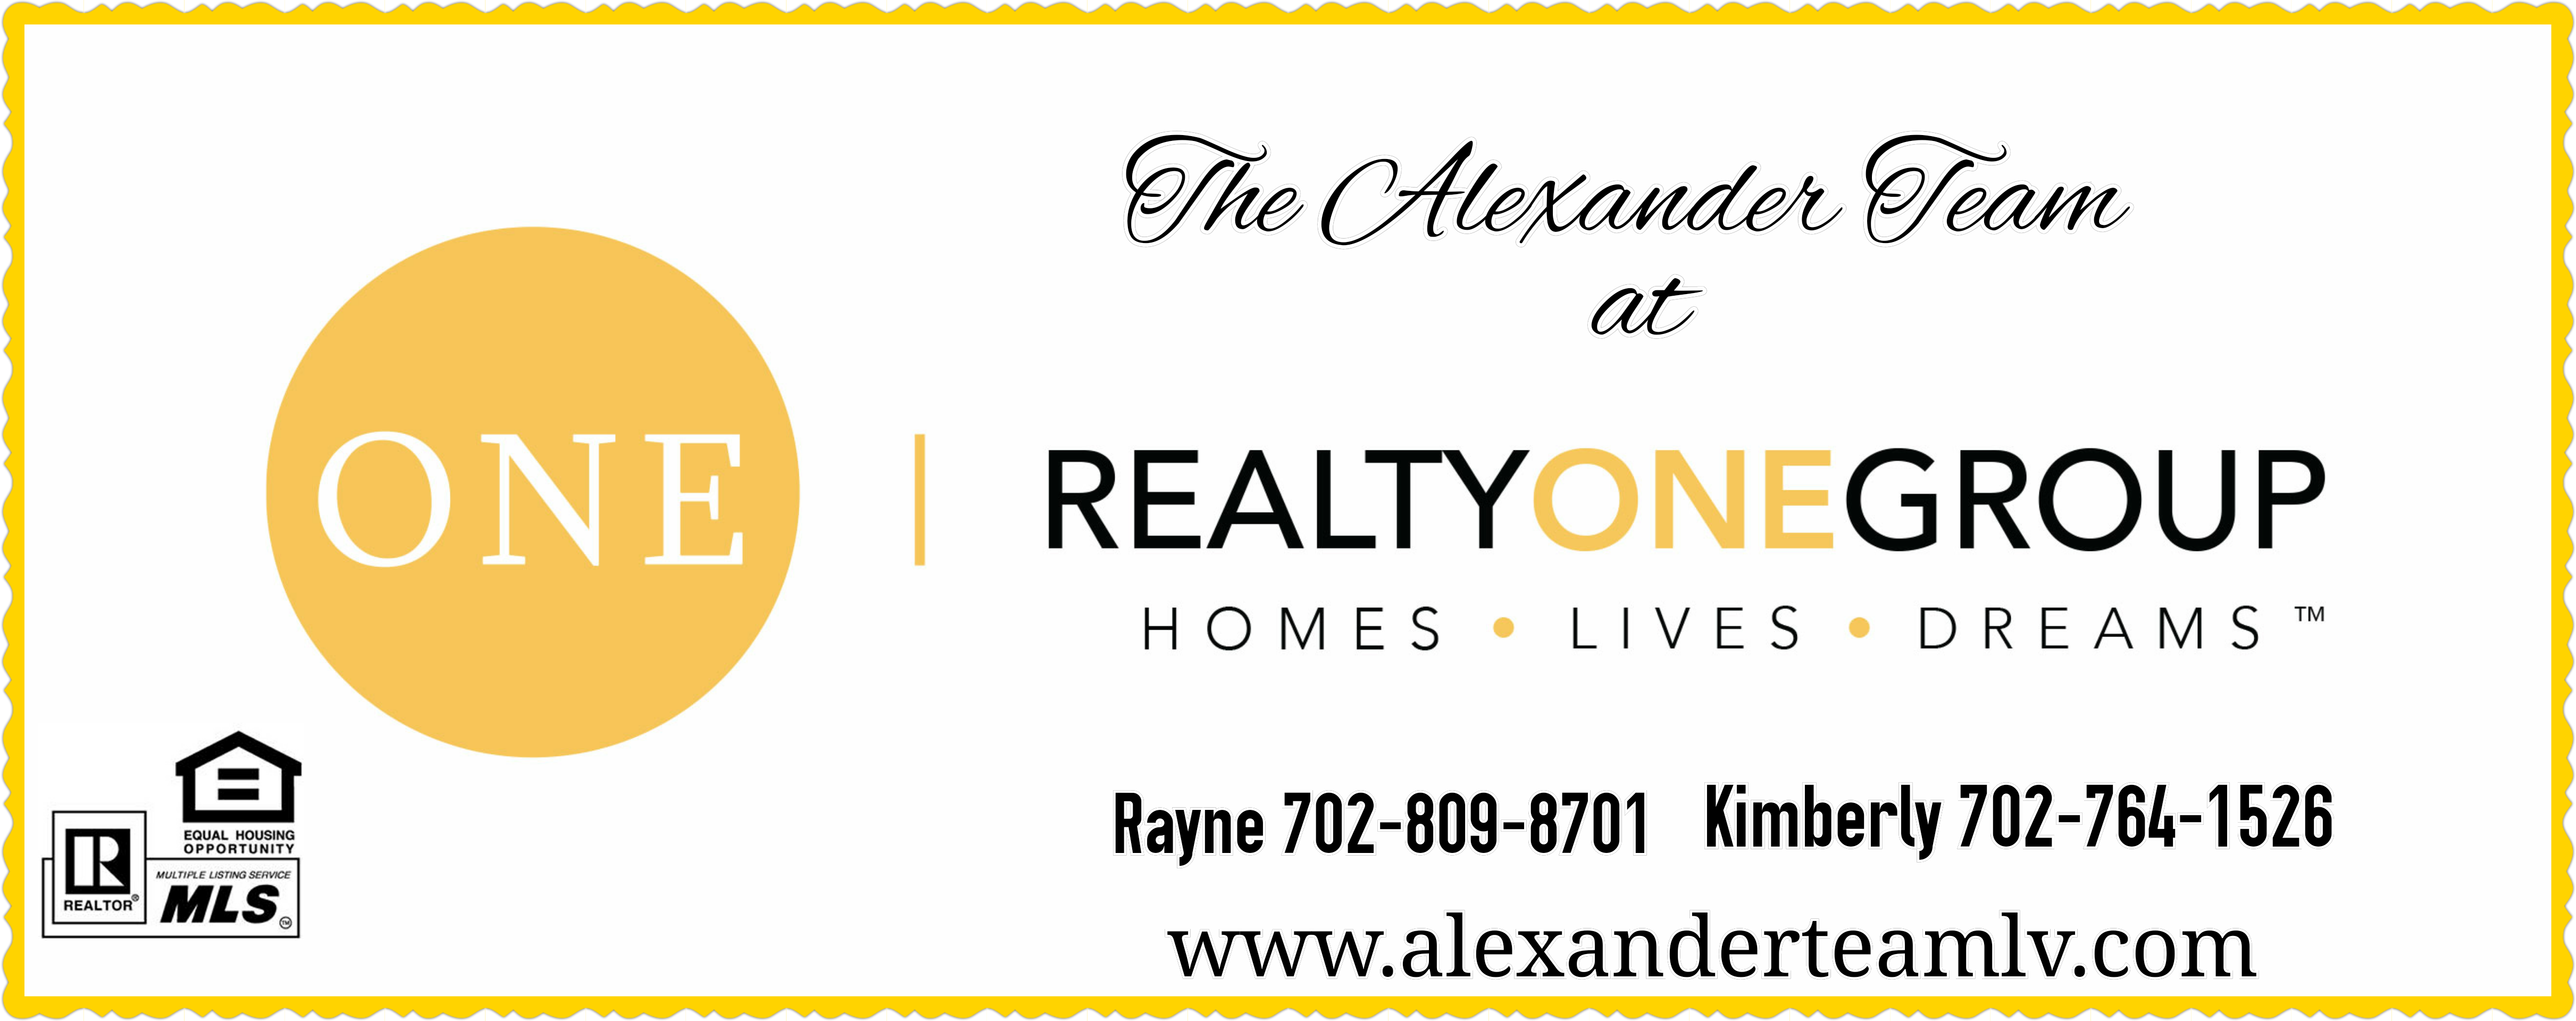 The Alexander Team at Realty One Group